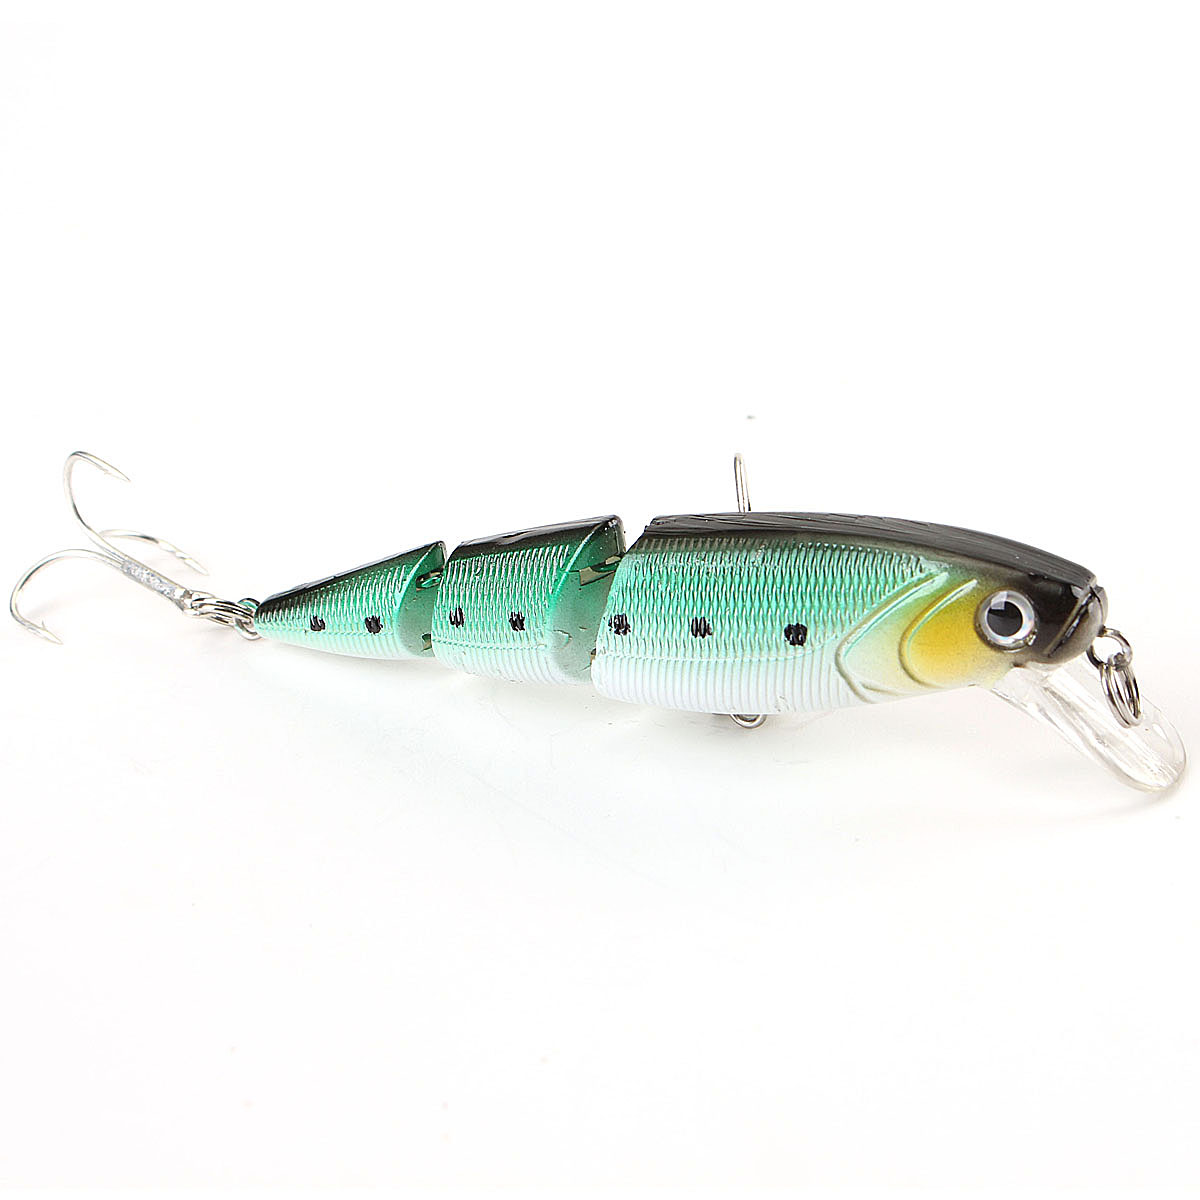 ZANLURE 4pcs/pack Multi Colors 3 Sections Minnow Fishing Lure Floating Lures Hard Bait